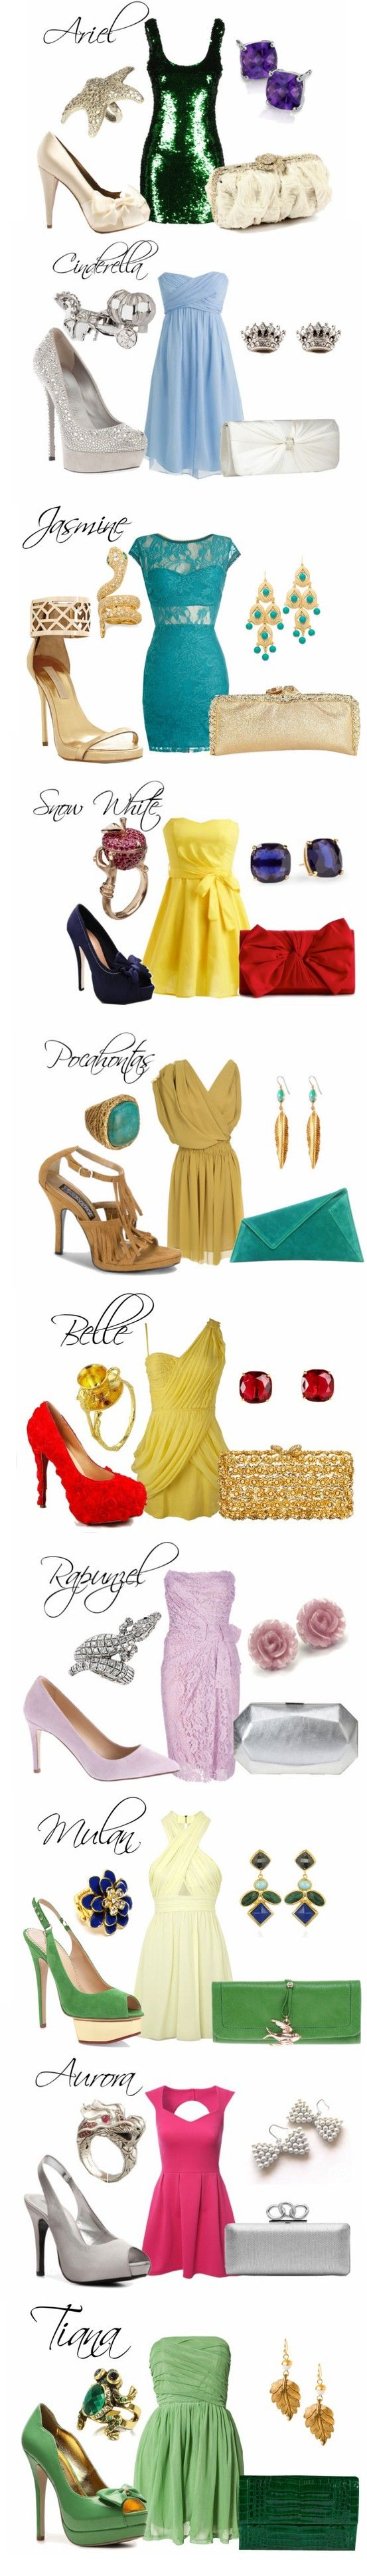 Modern Disney Princess Cocktail Dress Outfits created by lindseyy716.polyvore.com